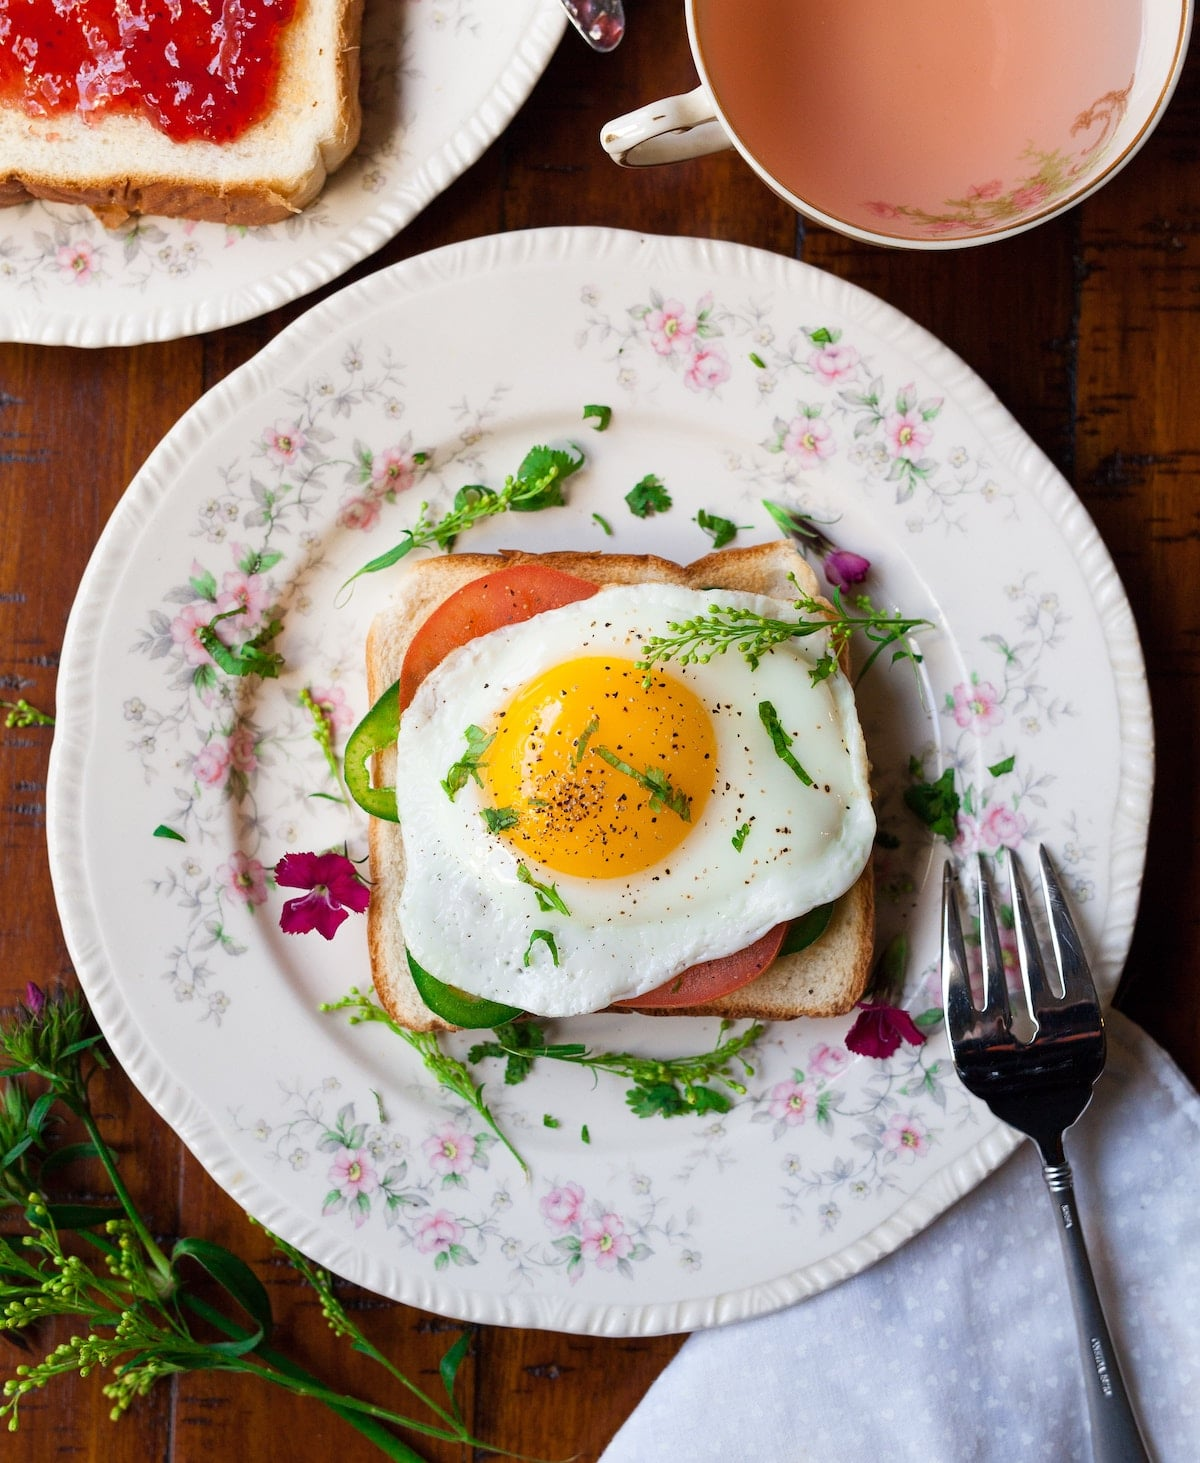 Fried egg on top of toast.